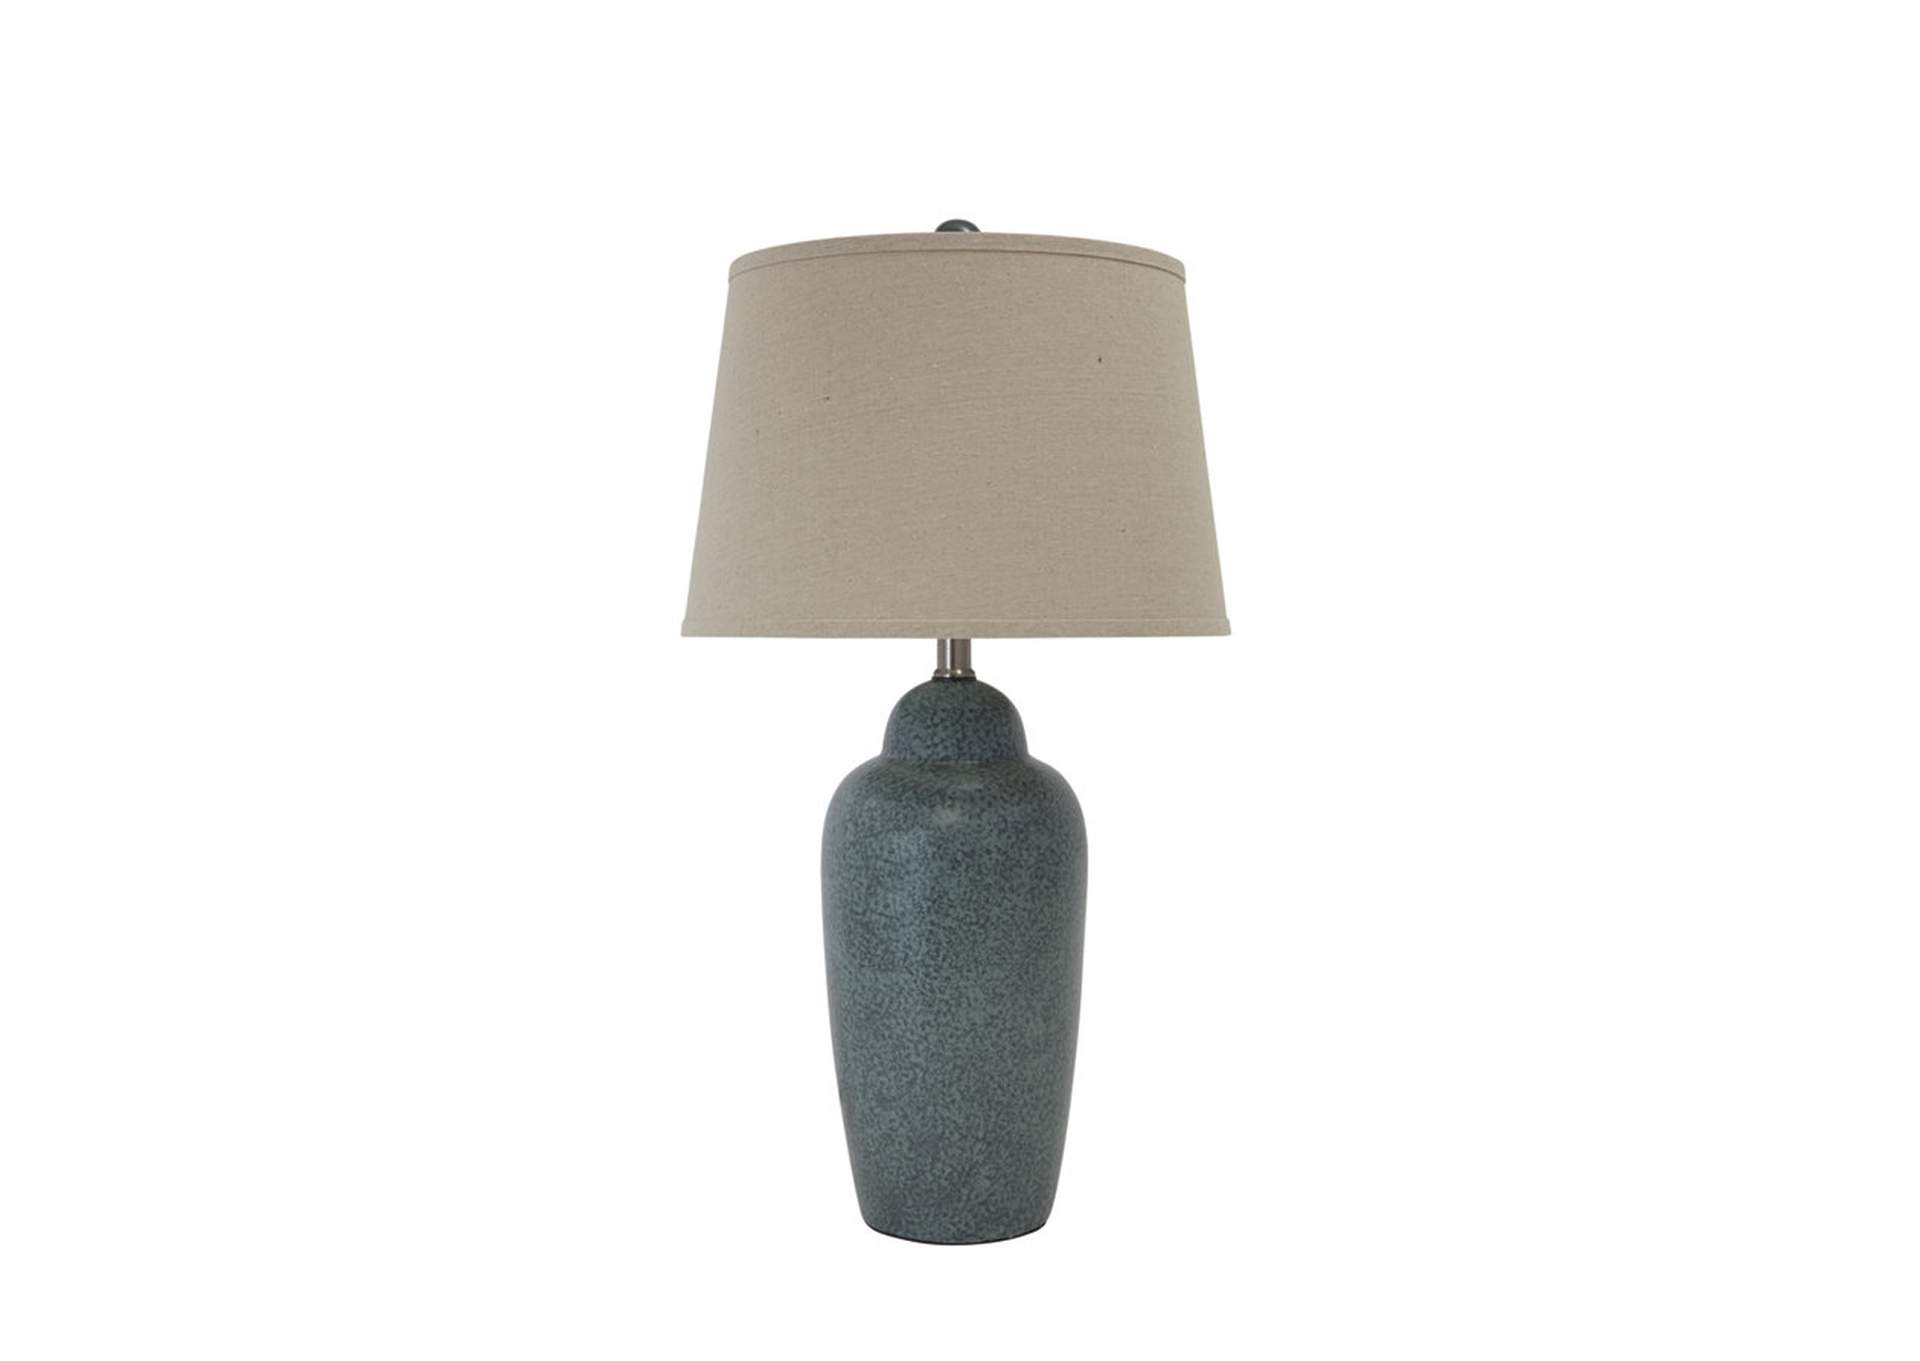 Accents green ceramic table lamp